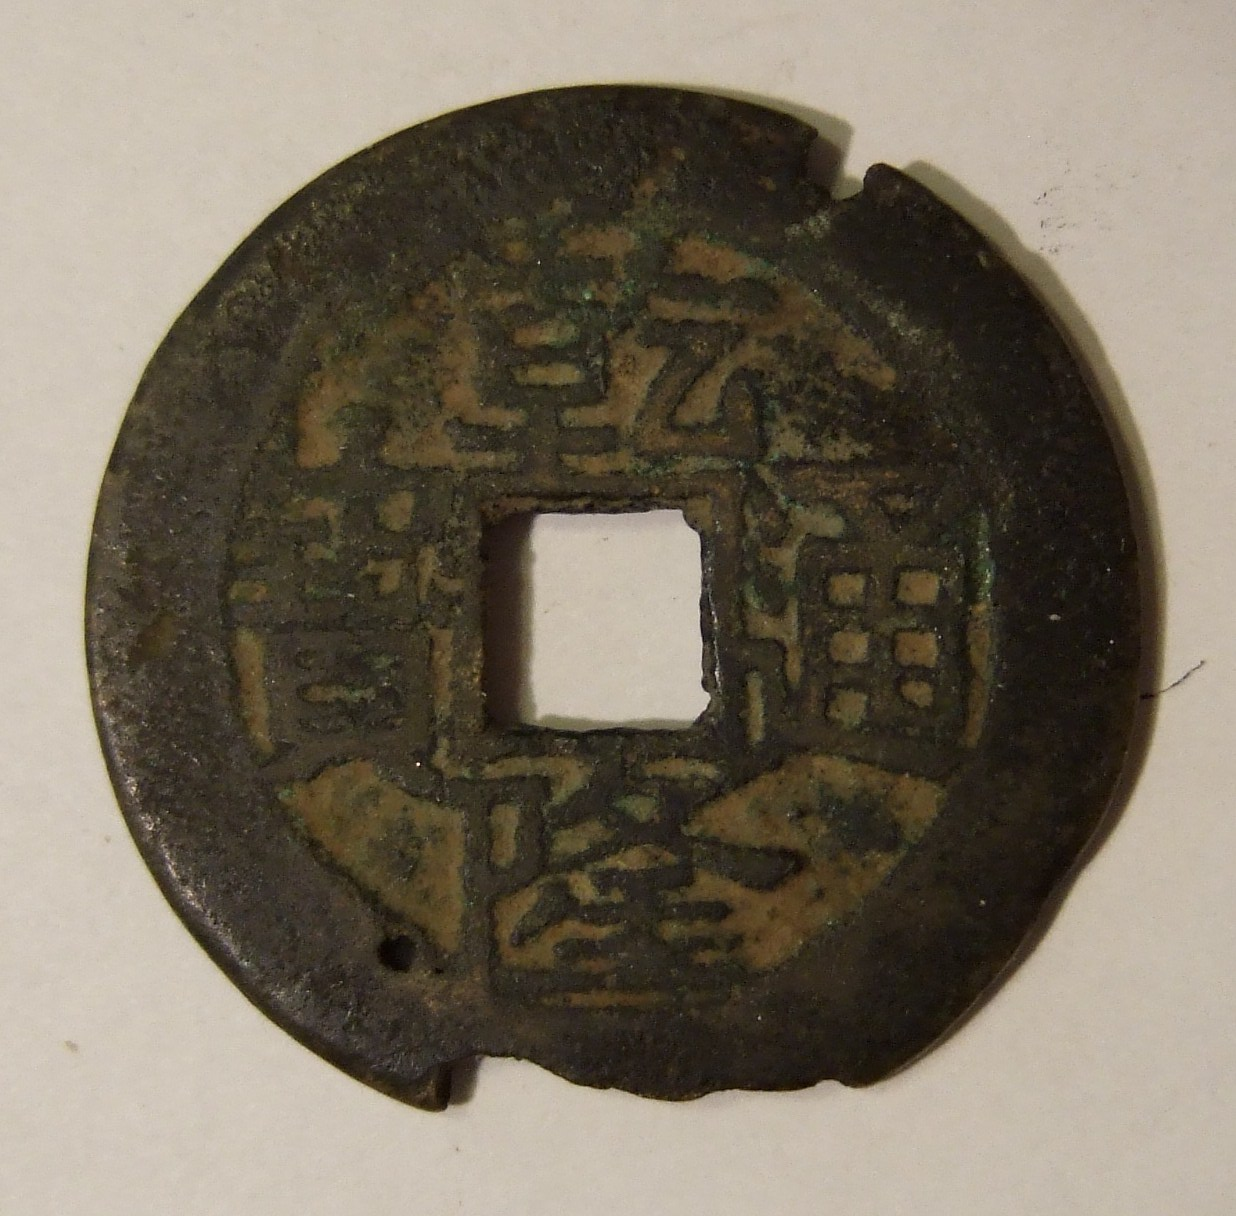 Qin Dynasty Artifacts File:Qing Dynasty coin...